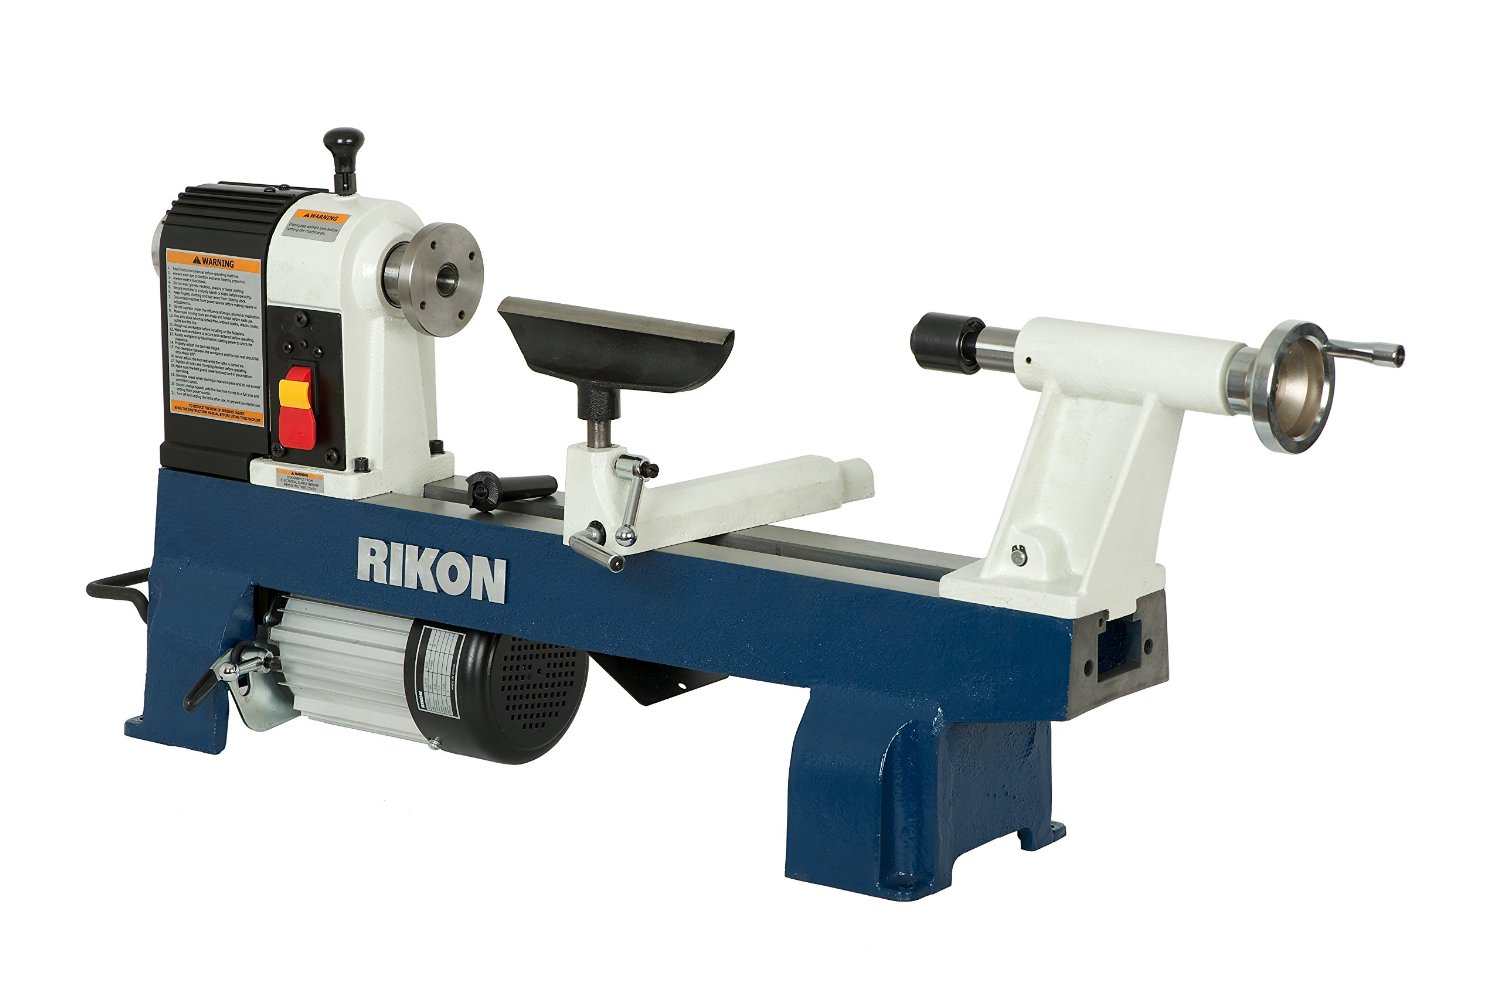 Rikon 70 100 Mini Lathe Review The Basic Woodworking